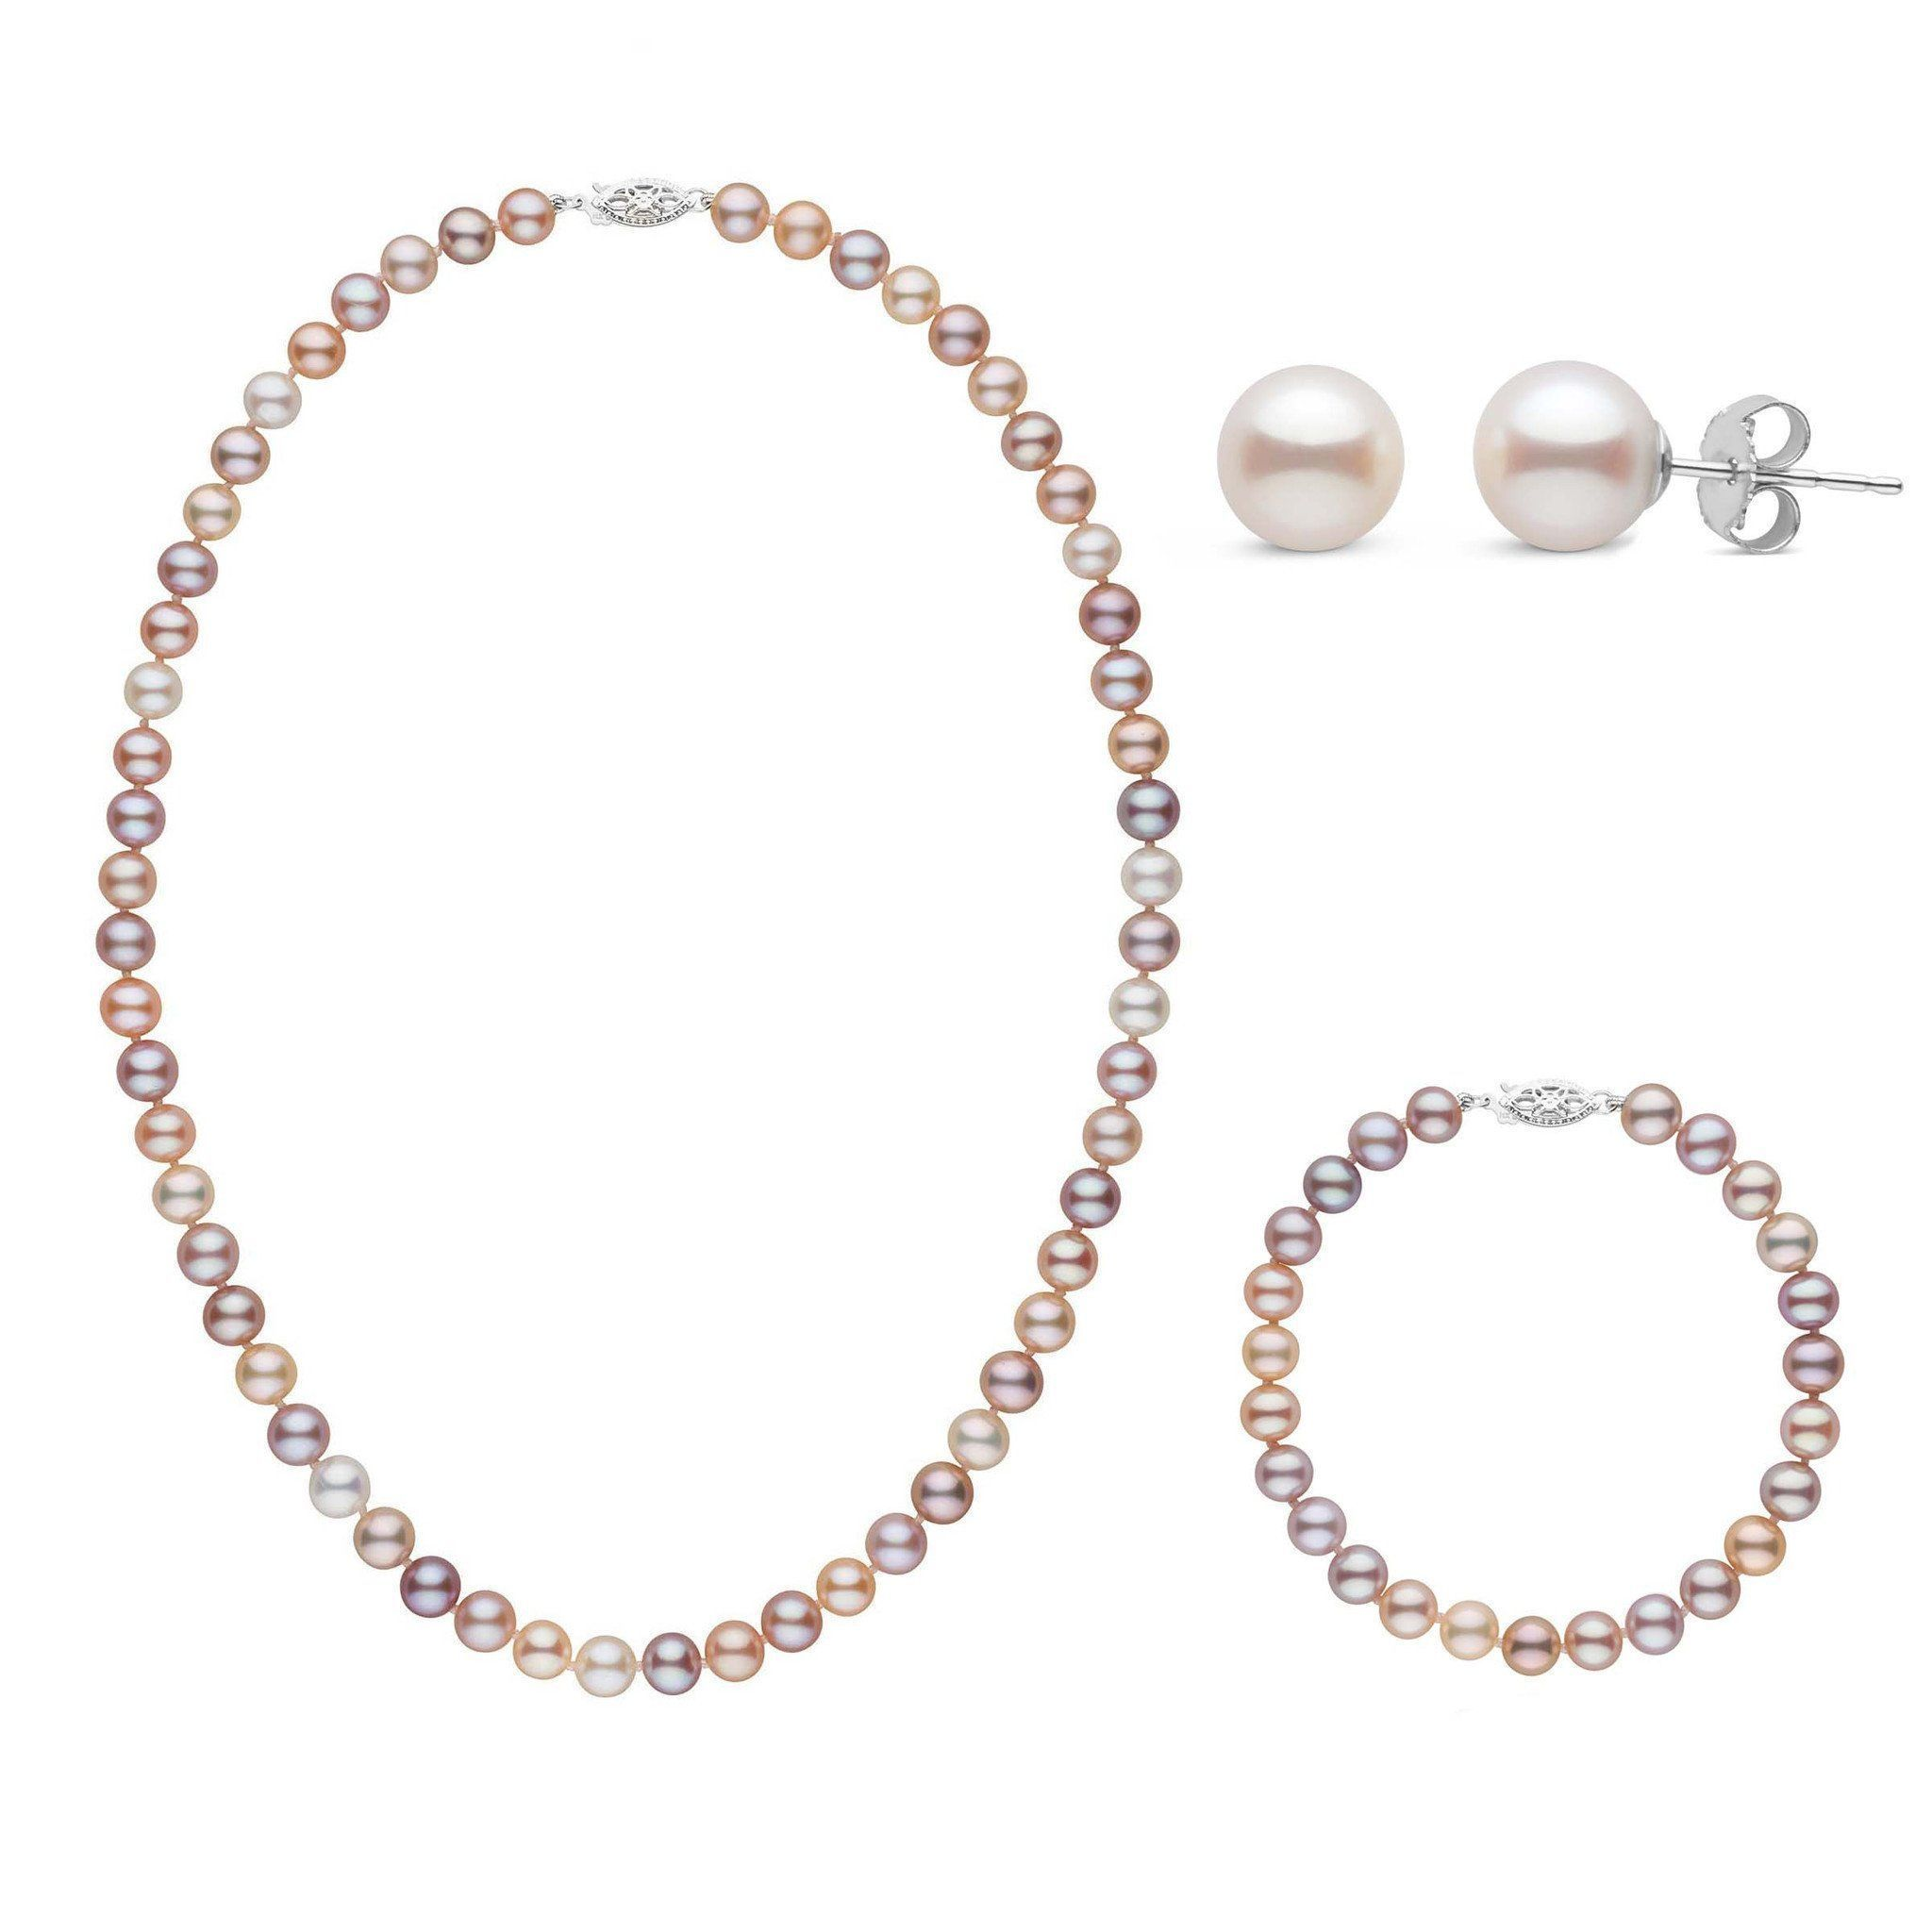 16 Inch 3 Piece Set of 6.5-7.0 mm AAA Multicolor Freshwater Pearls